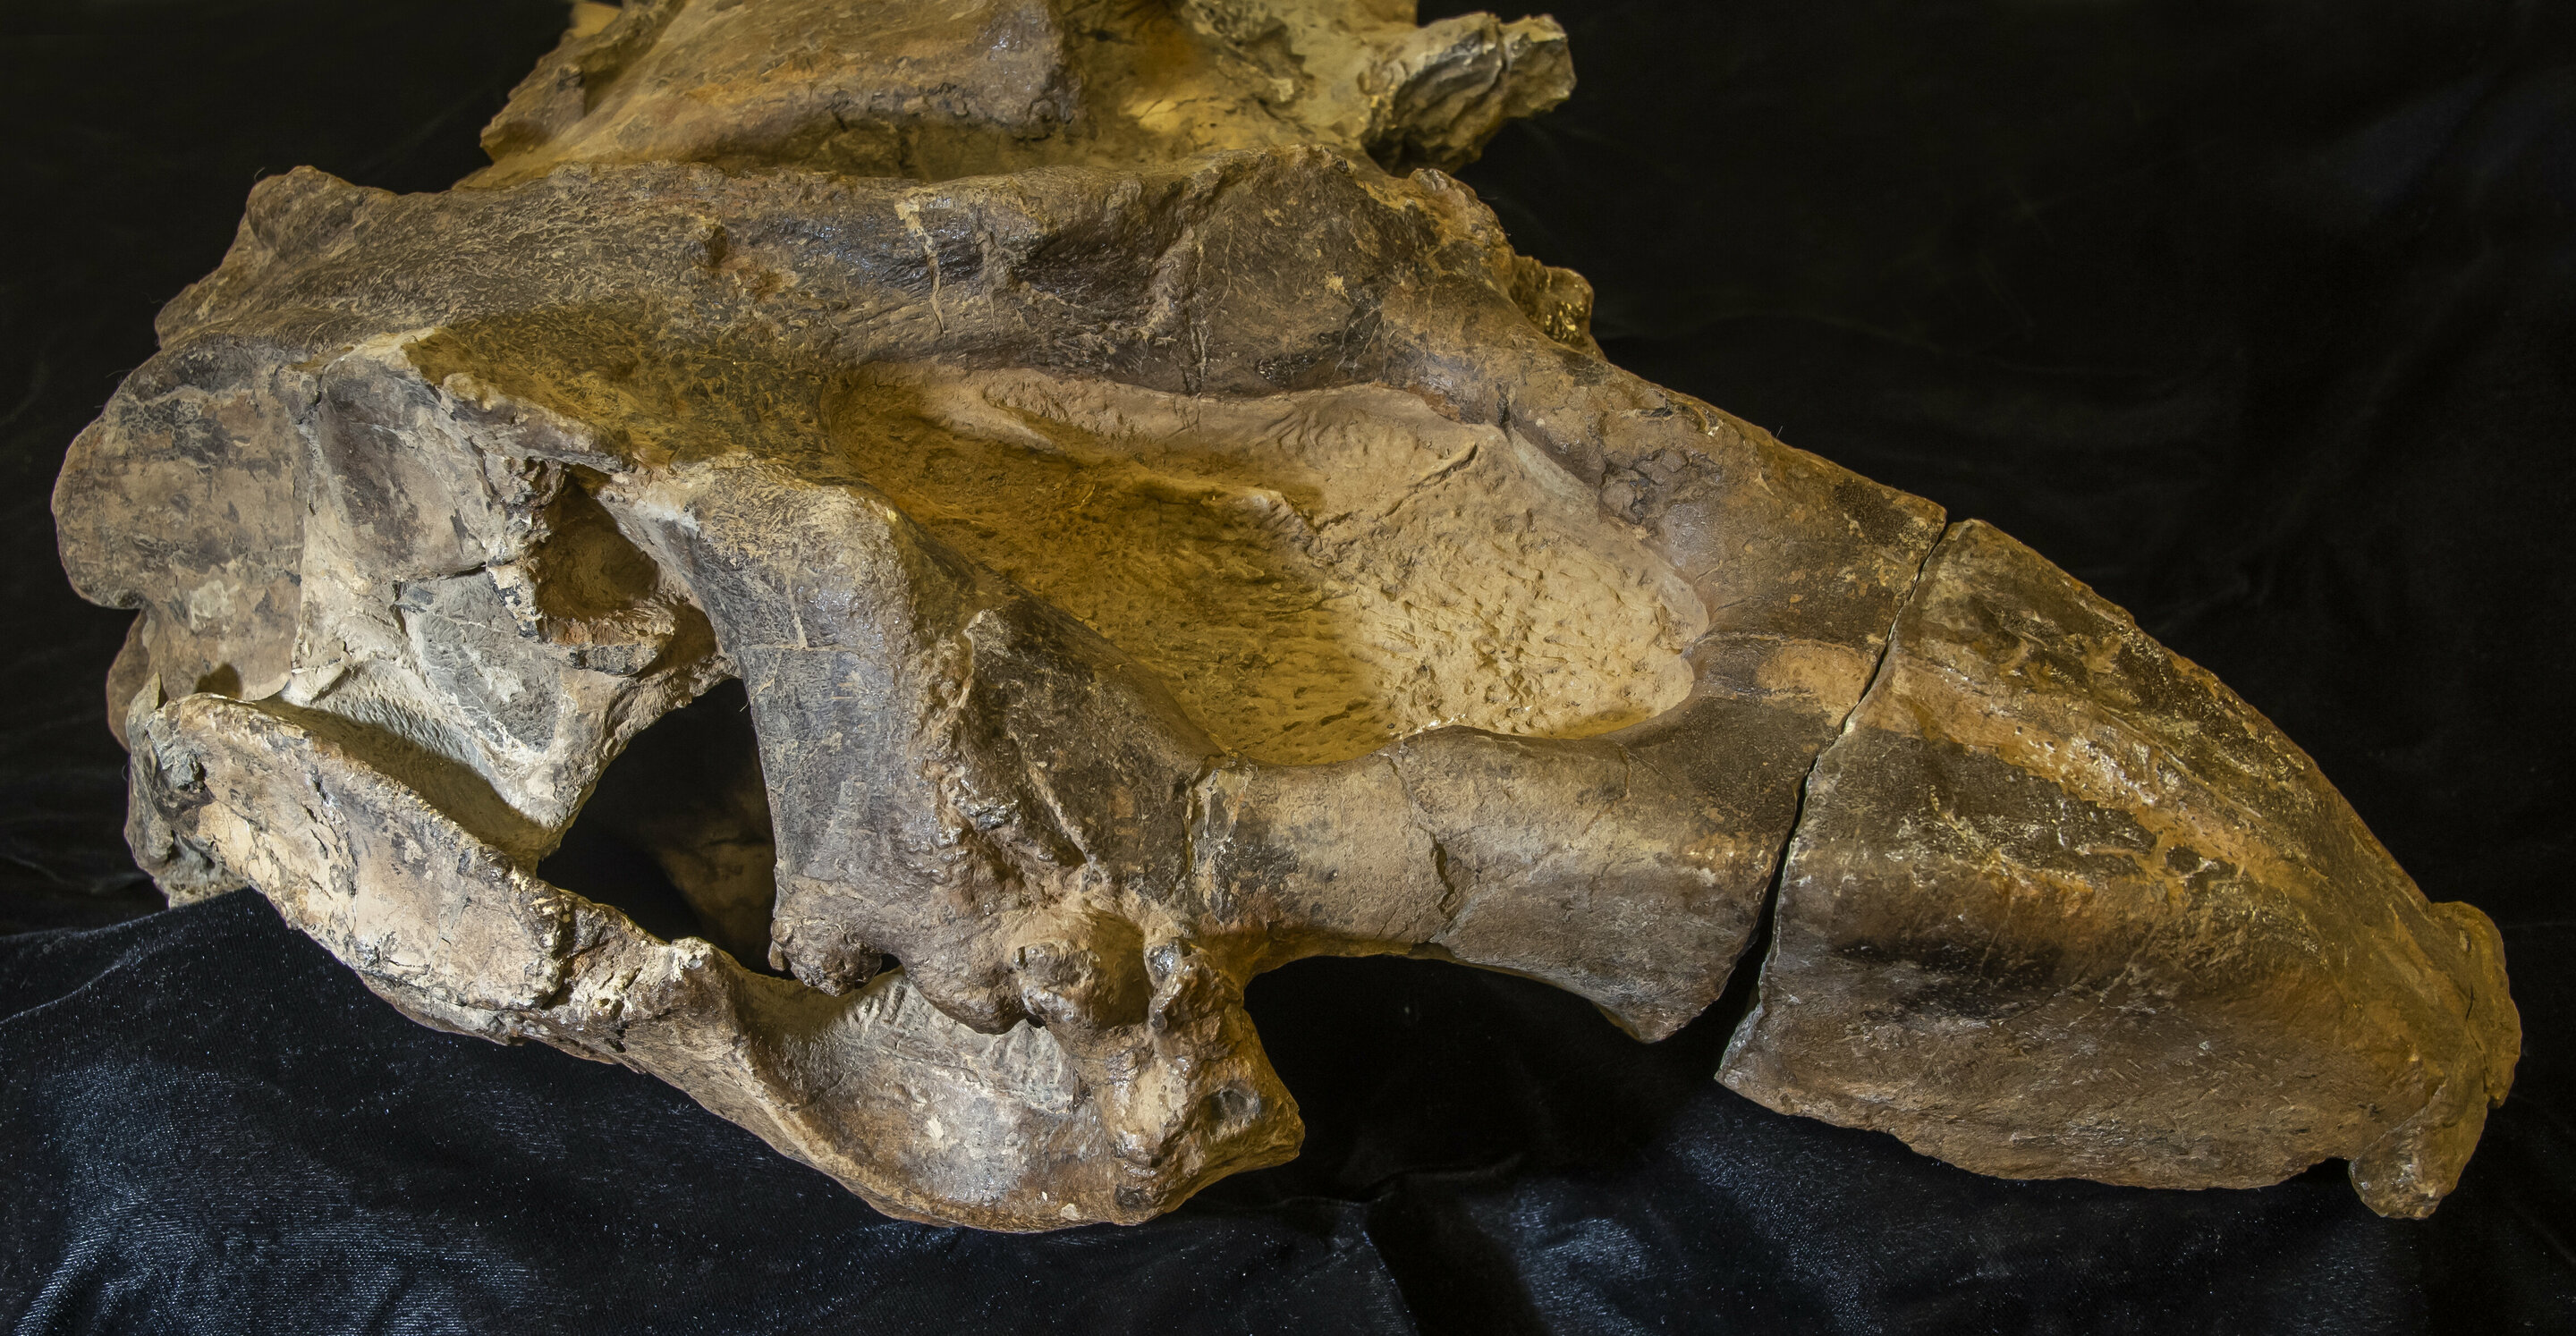 About 19-21 million years old, this dugong is the oldest marine mammal found in Central America and the first from the Pacific side of the Panama Canal. Here, the skull is seen from the side with the snout pointing to the right. Credit: Jeff Gage, Florida Museum